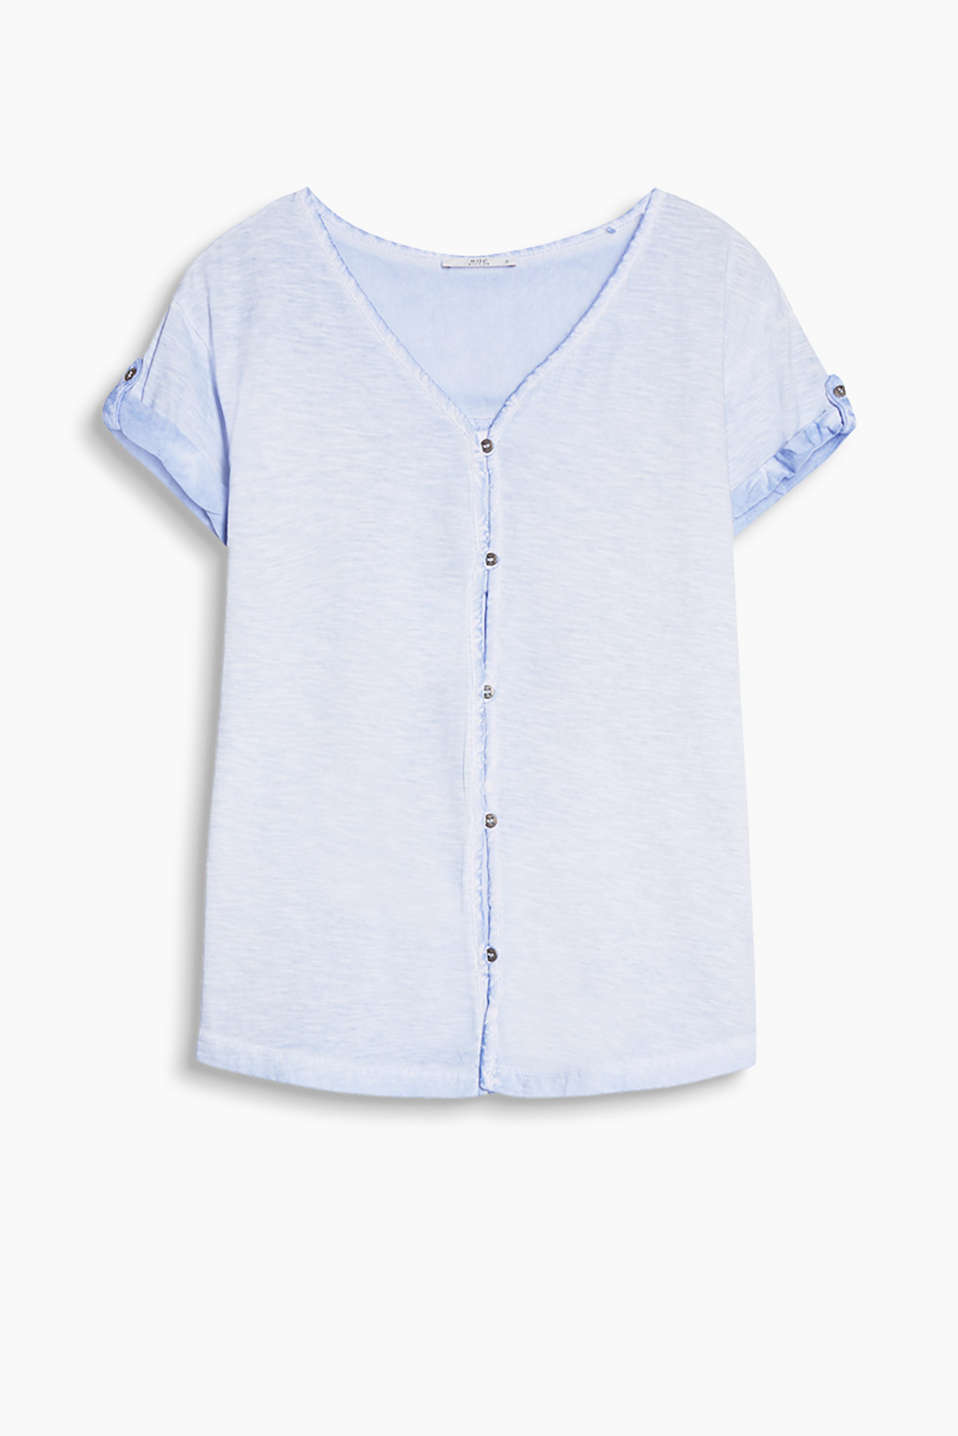 Casual top in yarn-dyed slub jersey with fabric details and a loop button placket